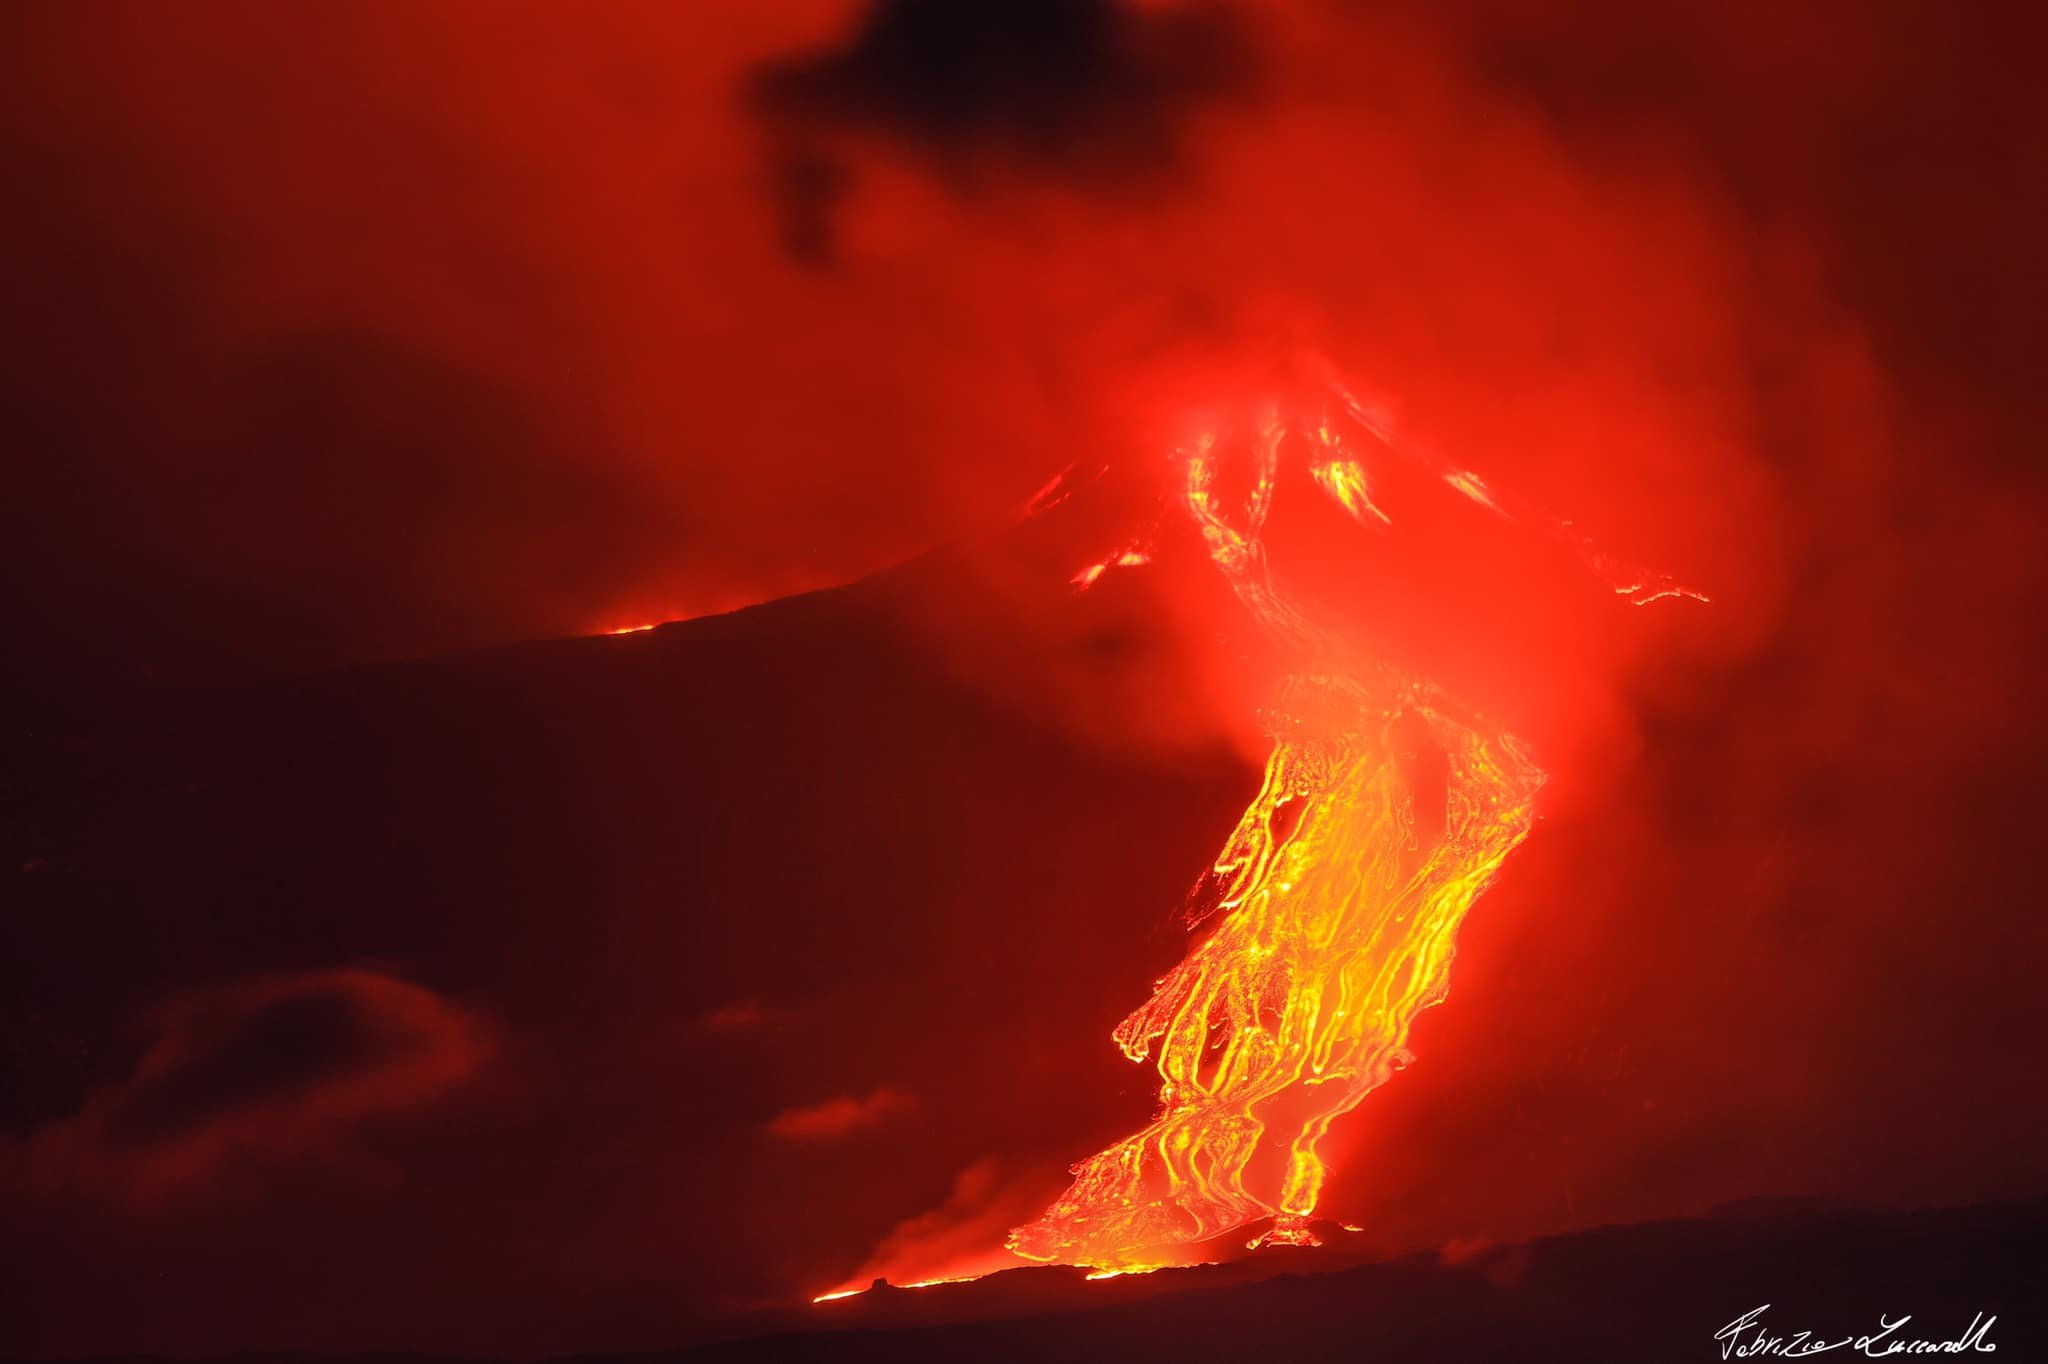 2nd eruption, 18th feb 2021. Etna with its lava flows, F. Zuccarello